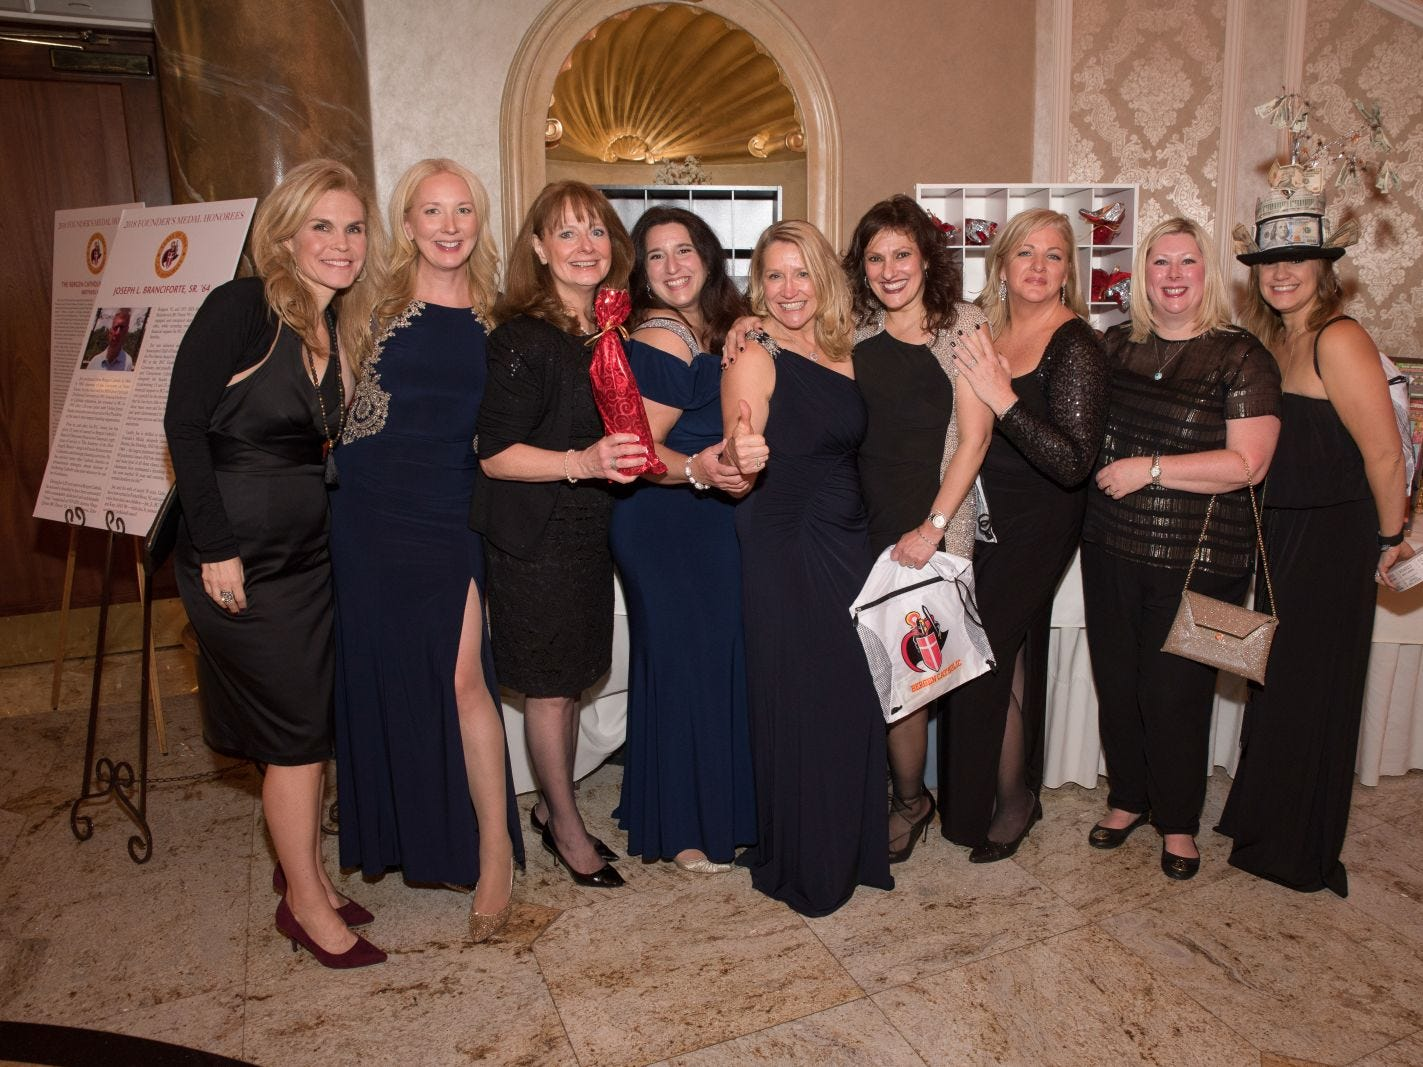 The Bergen Catholic Gala Mom Volunteers. Bergen Catholic High School celebrates their 2018 Crusader Gala at The Venetian in Garfield. 11/16/2018